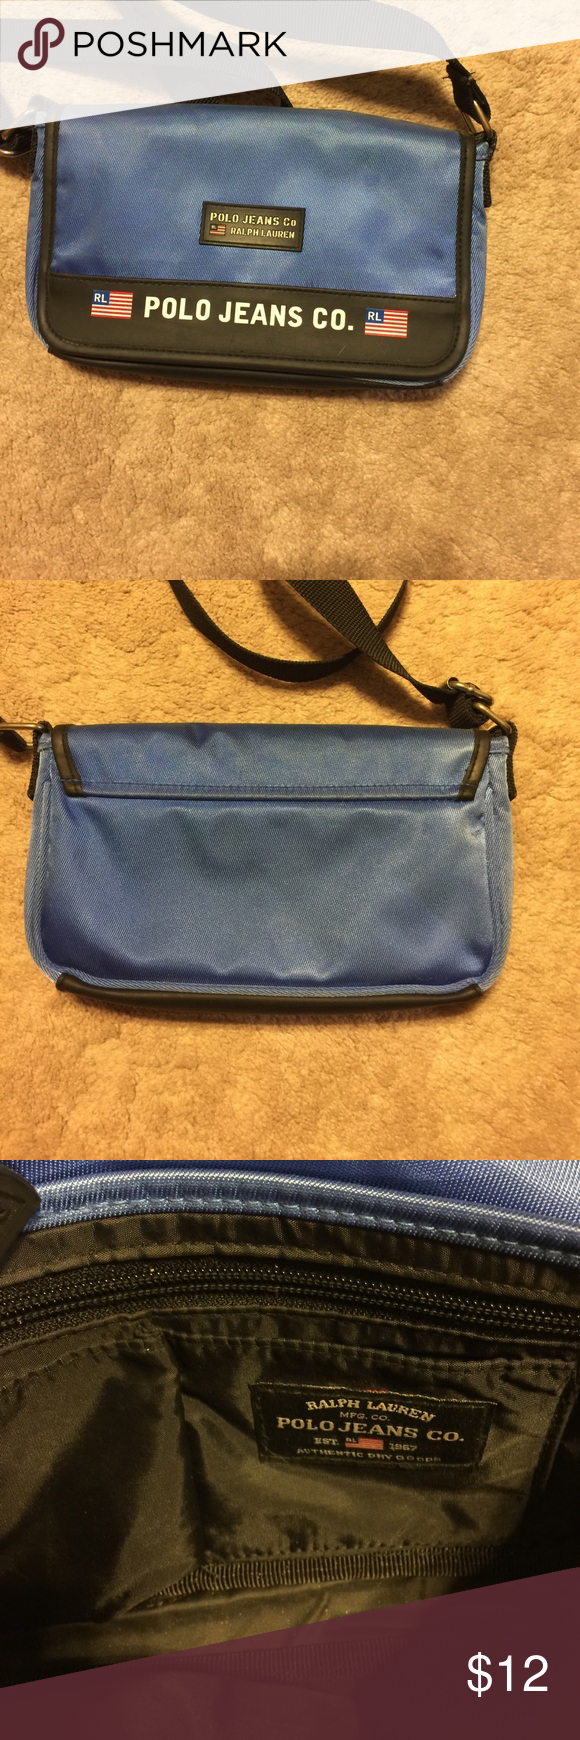 "Polo Ralph Lauren shoulder/ crossbody handbag Blue trimmed in Black casual Ralph Lauren. Bag!   22"" top of strap to ""D"" ring!  In really good condition except there is a reddish mark underneath the flap.  Shown in last picture. Polo by Ralph Lauren Bags Shoulder Bags"